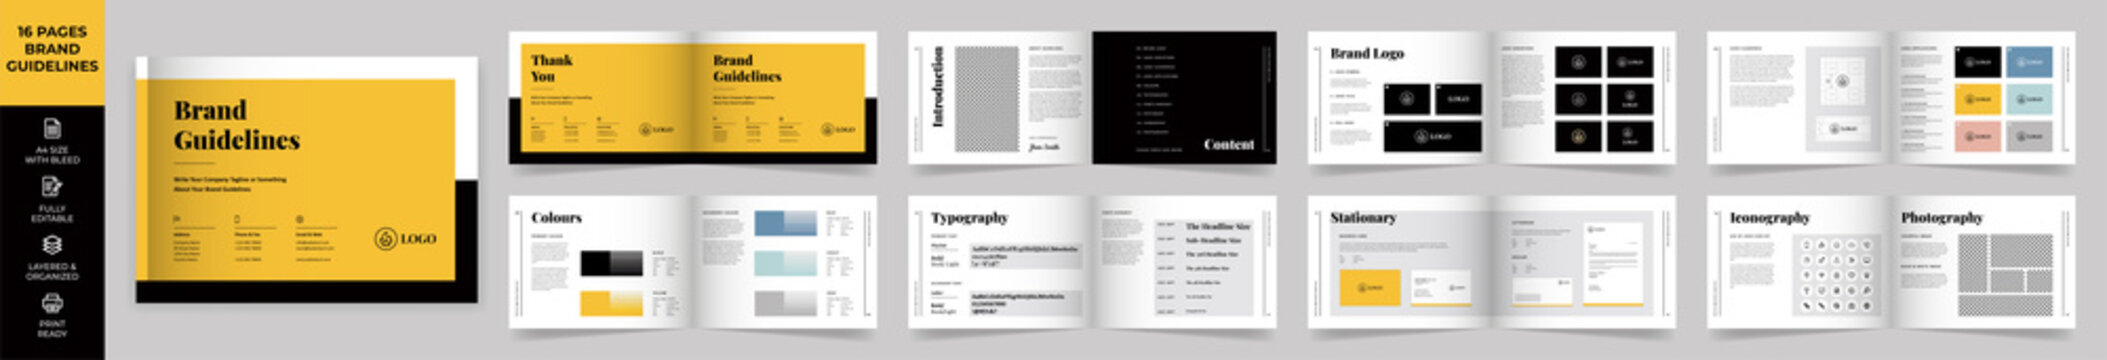 Landscape Brand Manual Template, Simple style and modern layout Brand Style , Brand Book, Brand Identity, Brand Guideline, Guide Book